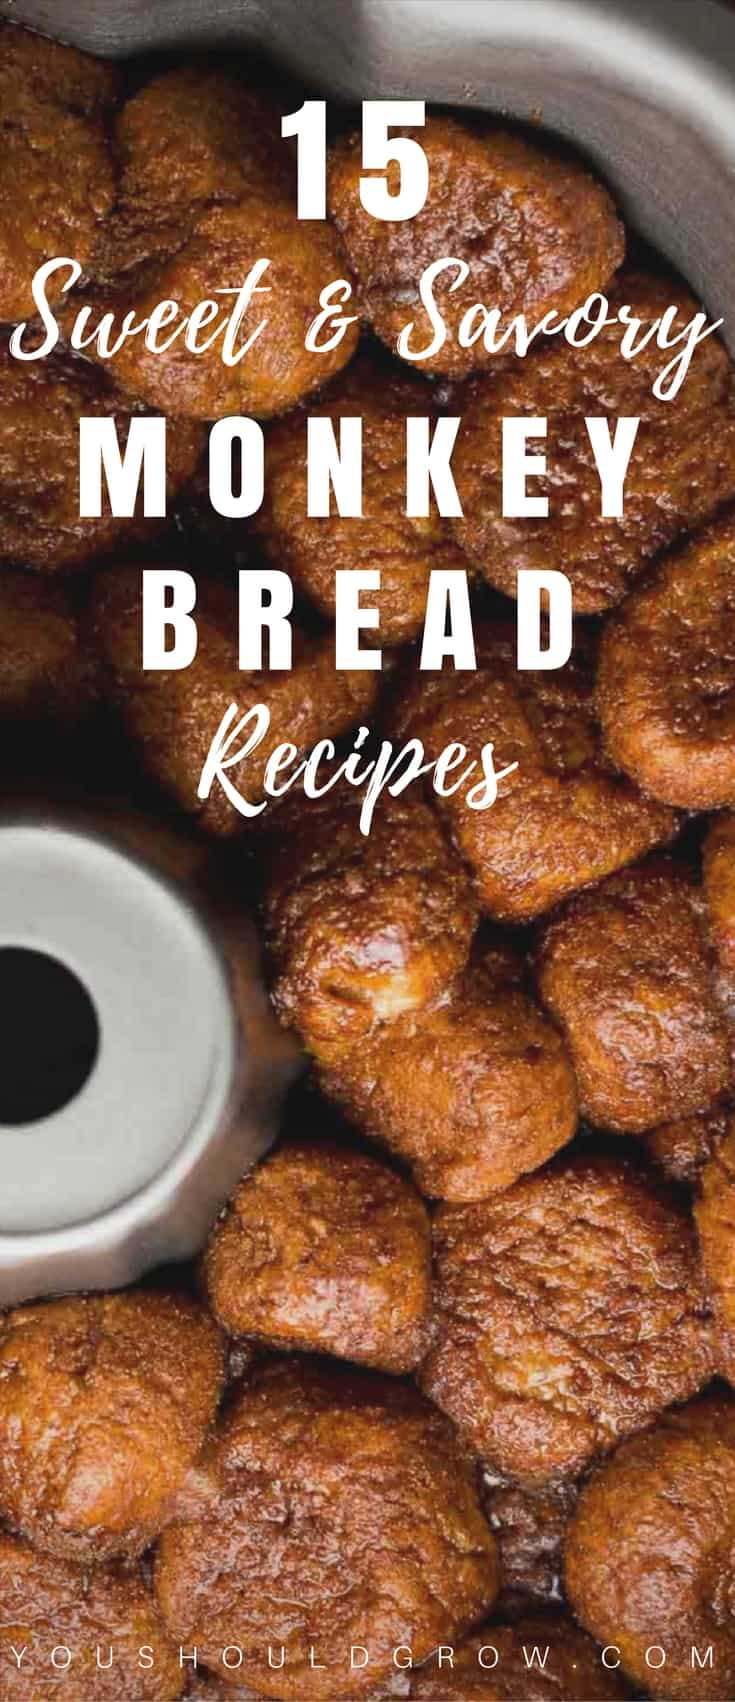 Gooey monkey bread is an indulgence that's always a hit at family dinners, potlucks, and even breakfast!So these delicious breads are perfect for holiday gatherings of all varieties. All that soft, fluffy bread mixed up with tantalizing ingredients - it is absolutely irresistible. It invites you to stand around the table, pulling off mouth-watering chunks of bread to savor as you enjoy conversations with friends.